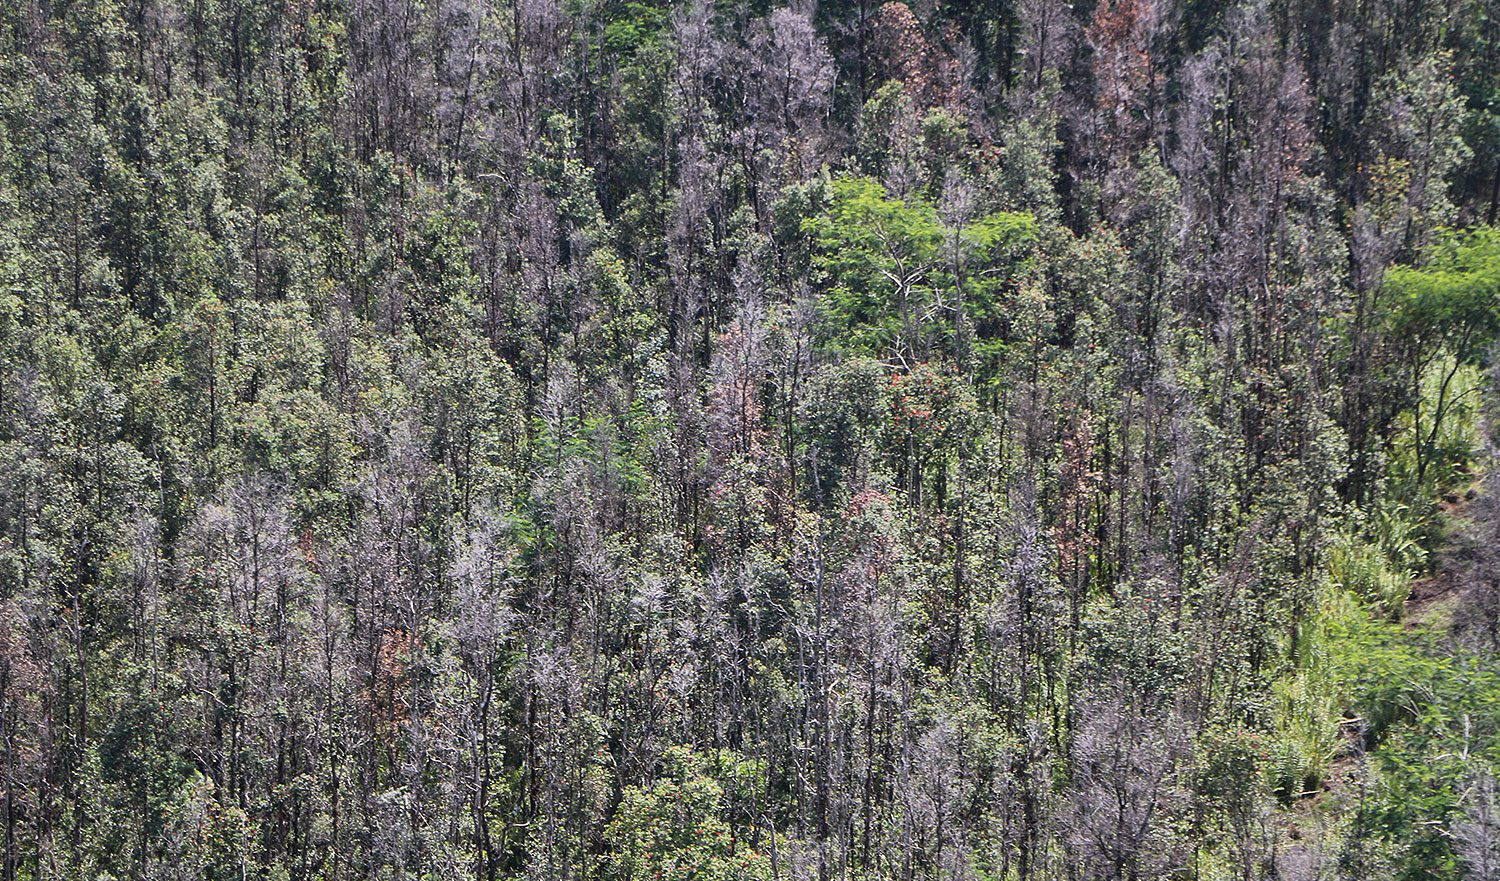 An introduced tree disease—called Rapid Ohia Death (left)—is rapidly spreading across the big island of Hawaii, putting even more pressure on declining Iiwi populations that were already beset by mosquito-borne diseases. Photos courtesy of Hawaii Department of Lands and Natural Resources.